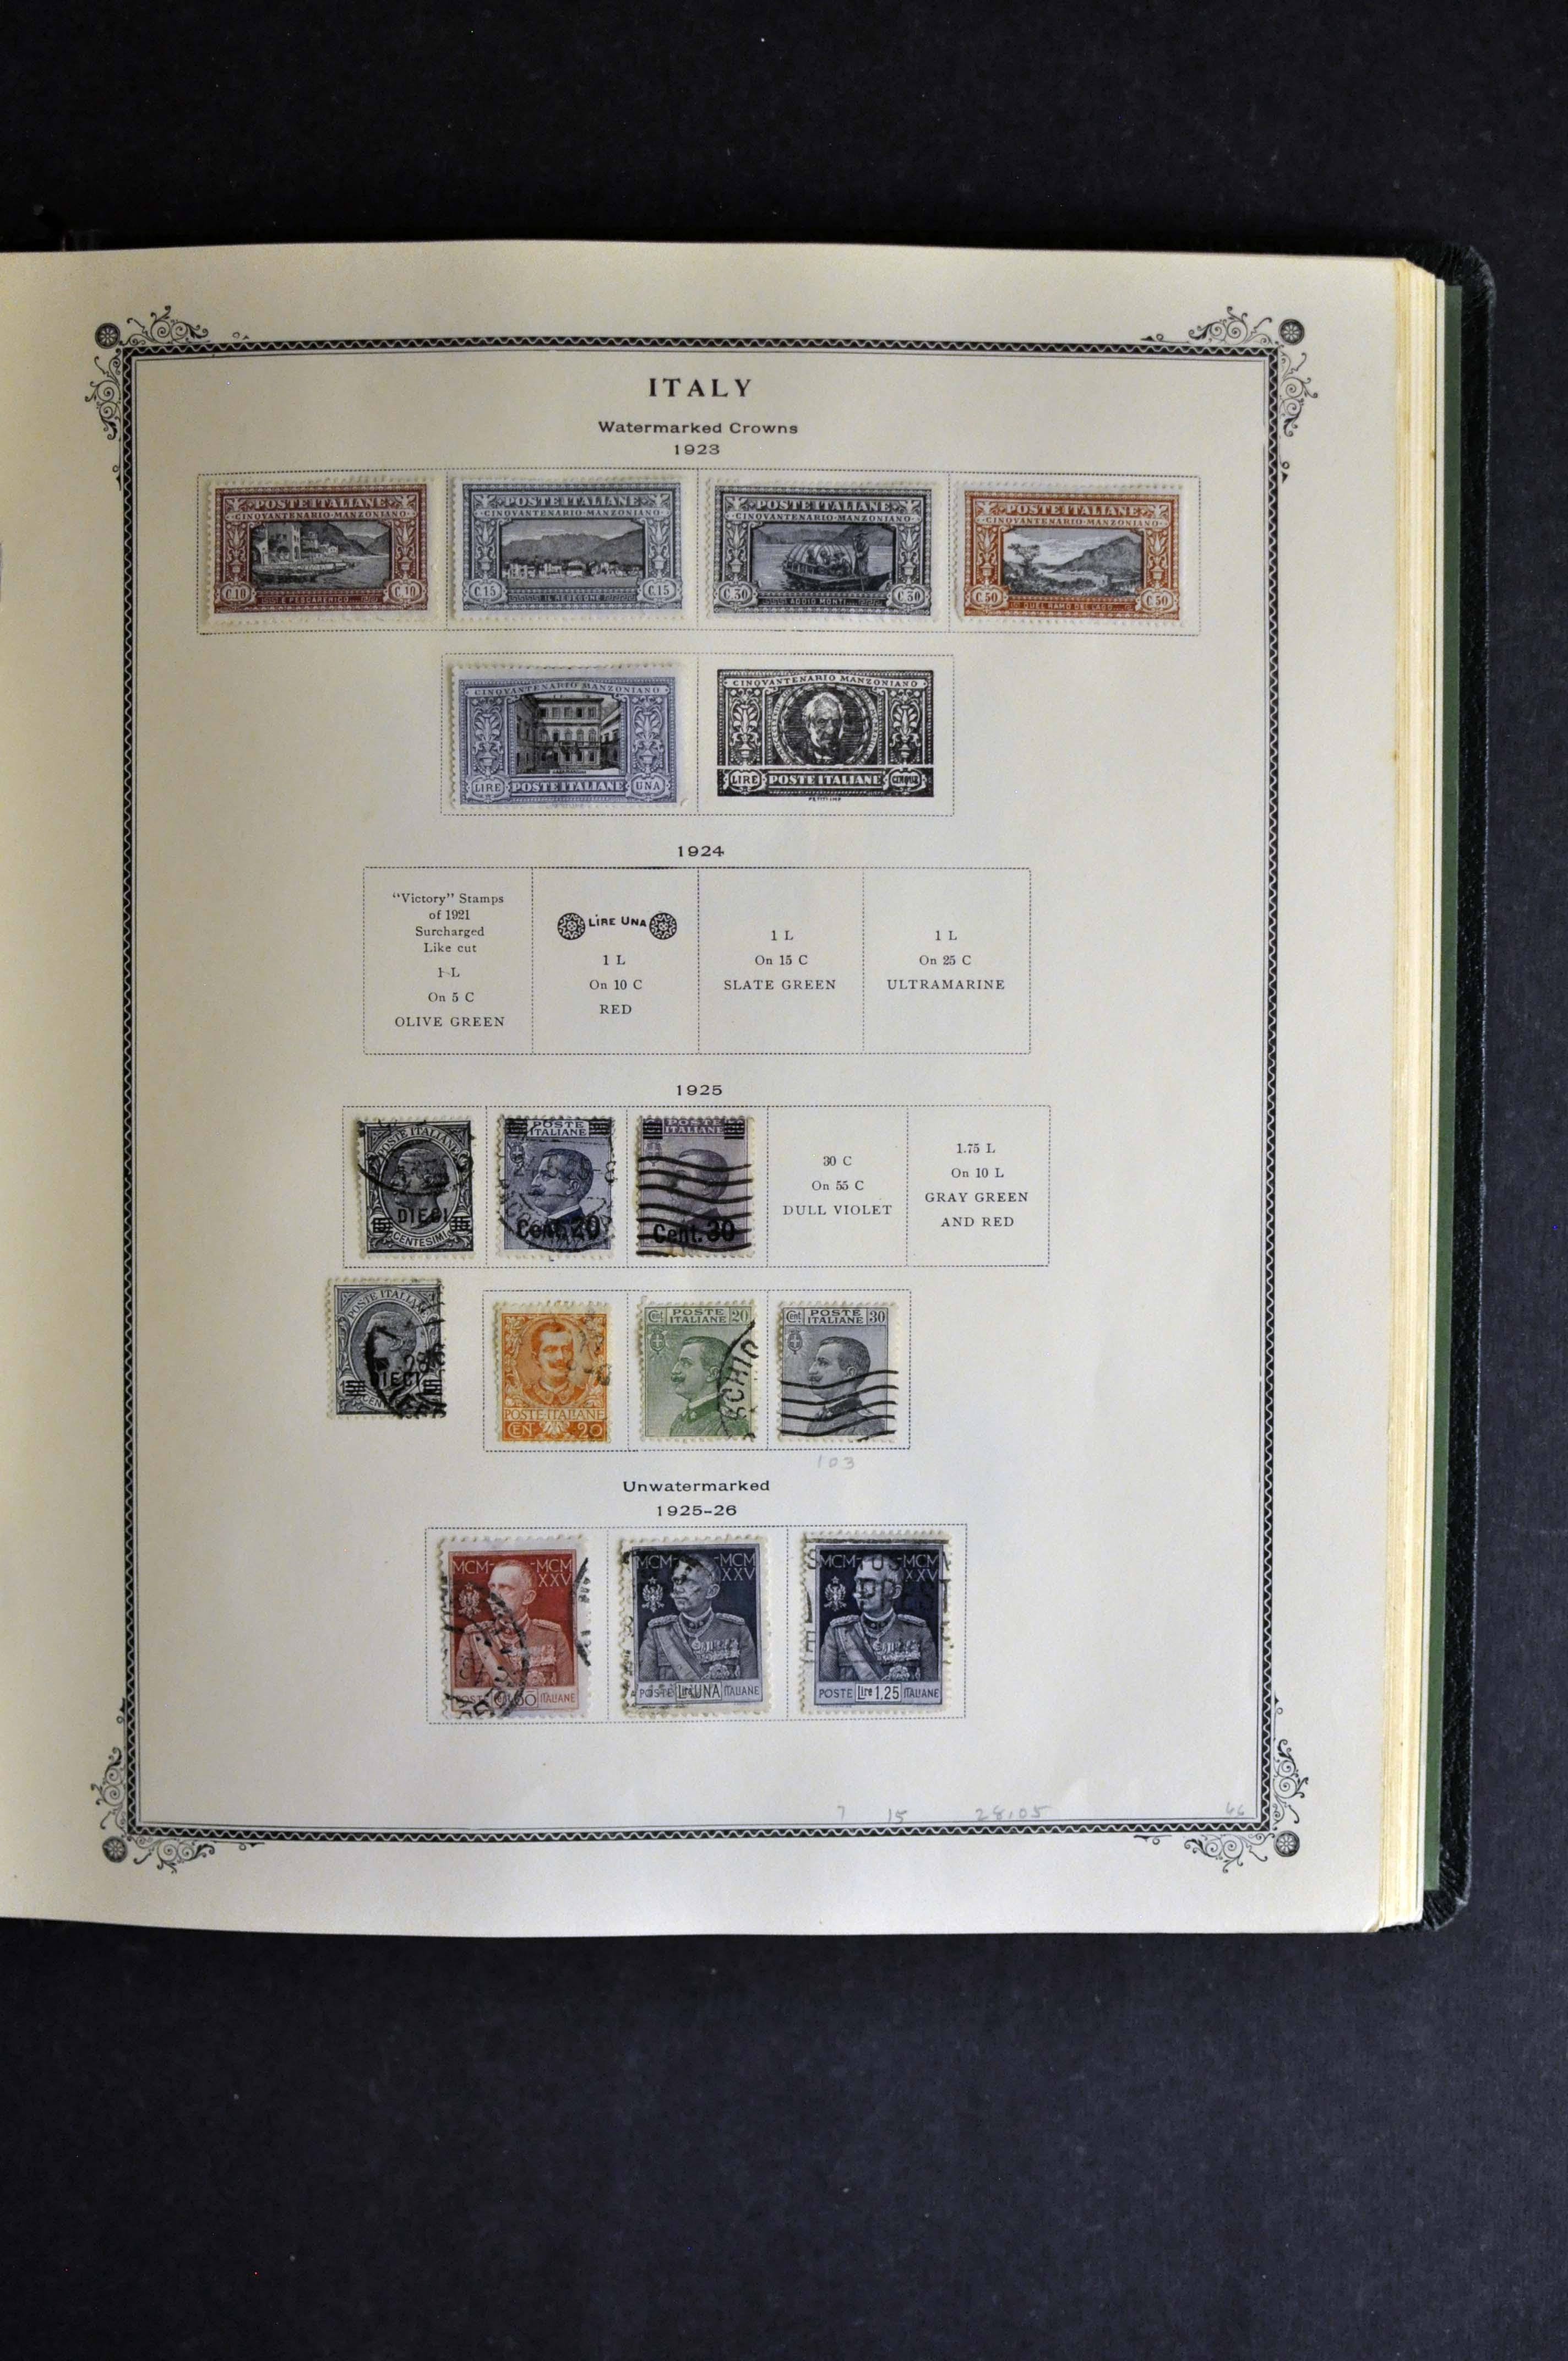 authorized deliveries postage dues highly plete useful occupations etc some typical dubious cancels in 1930s period but overall condition better